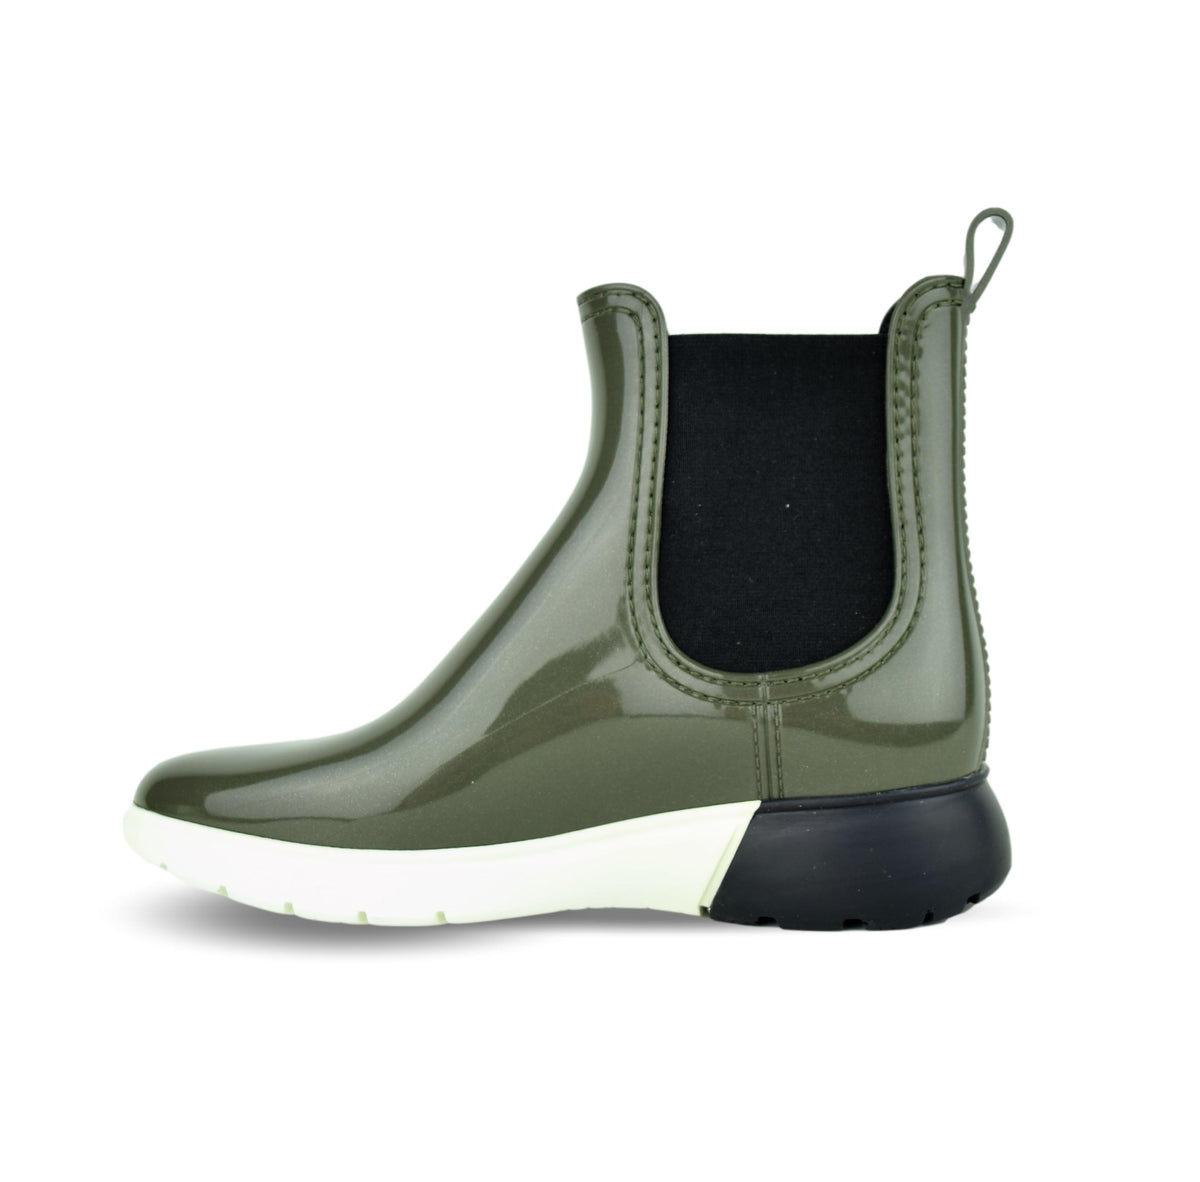 WING - Lemon Jelly Gum Boot Khaki